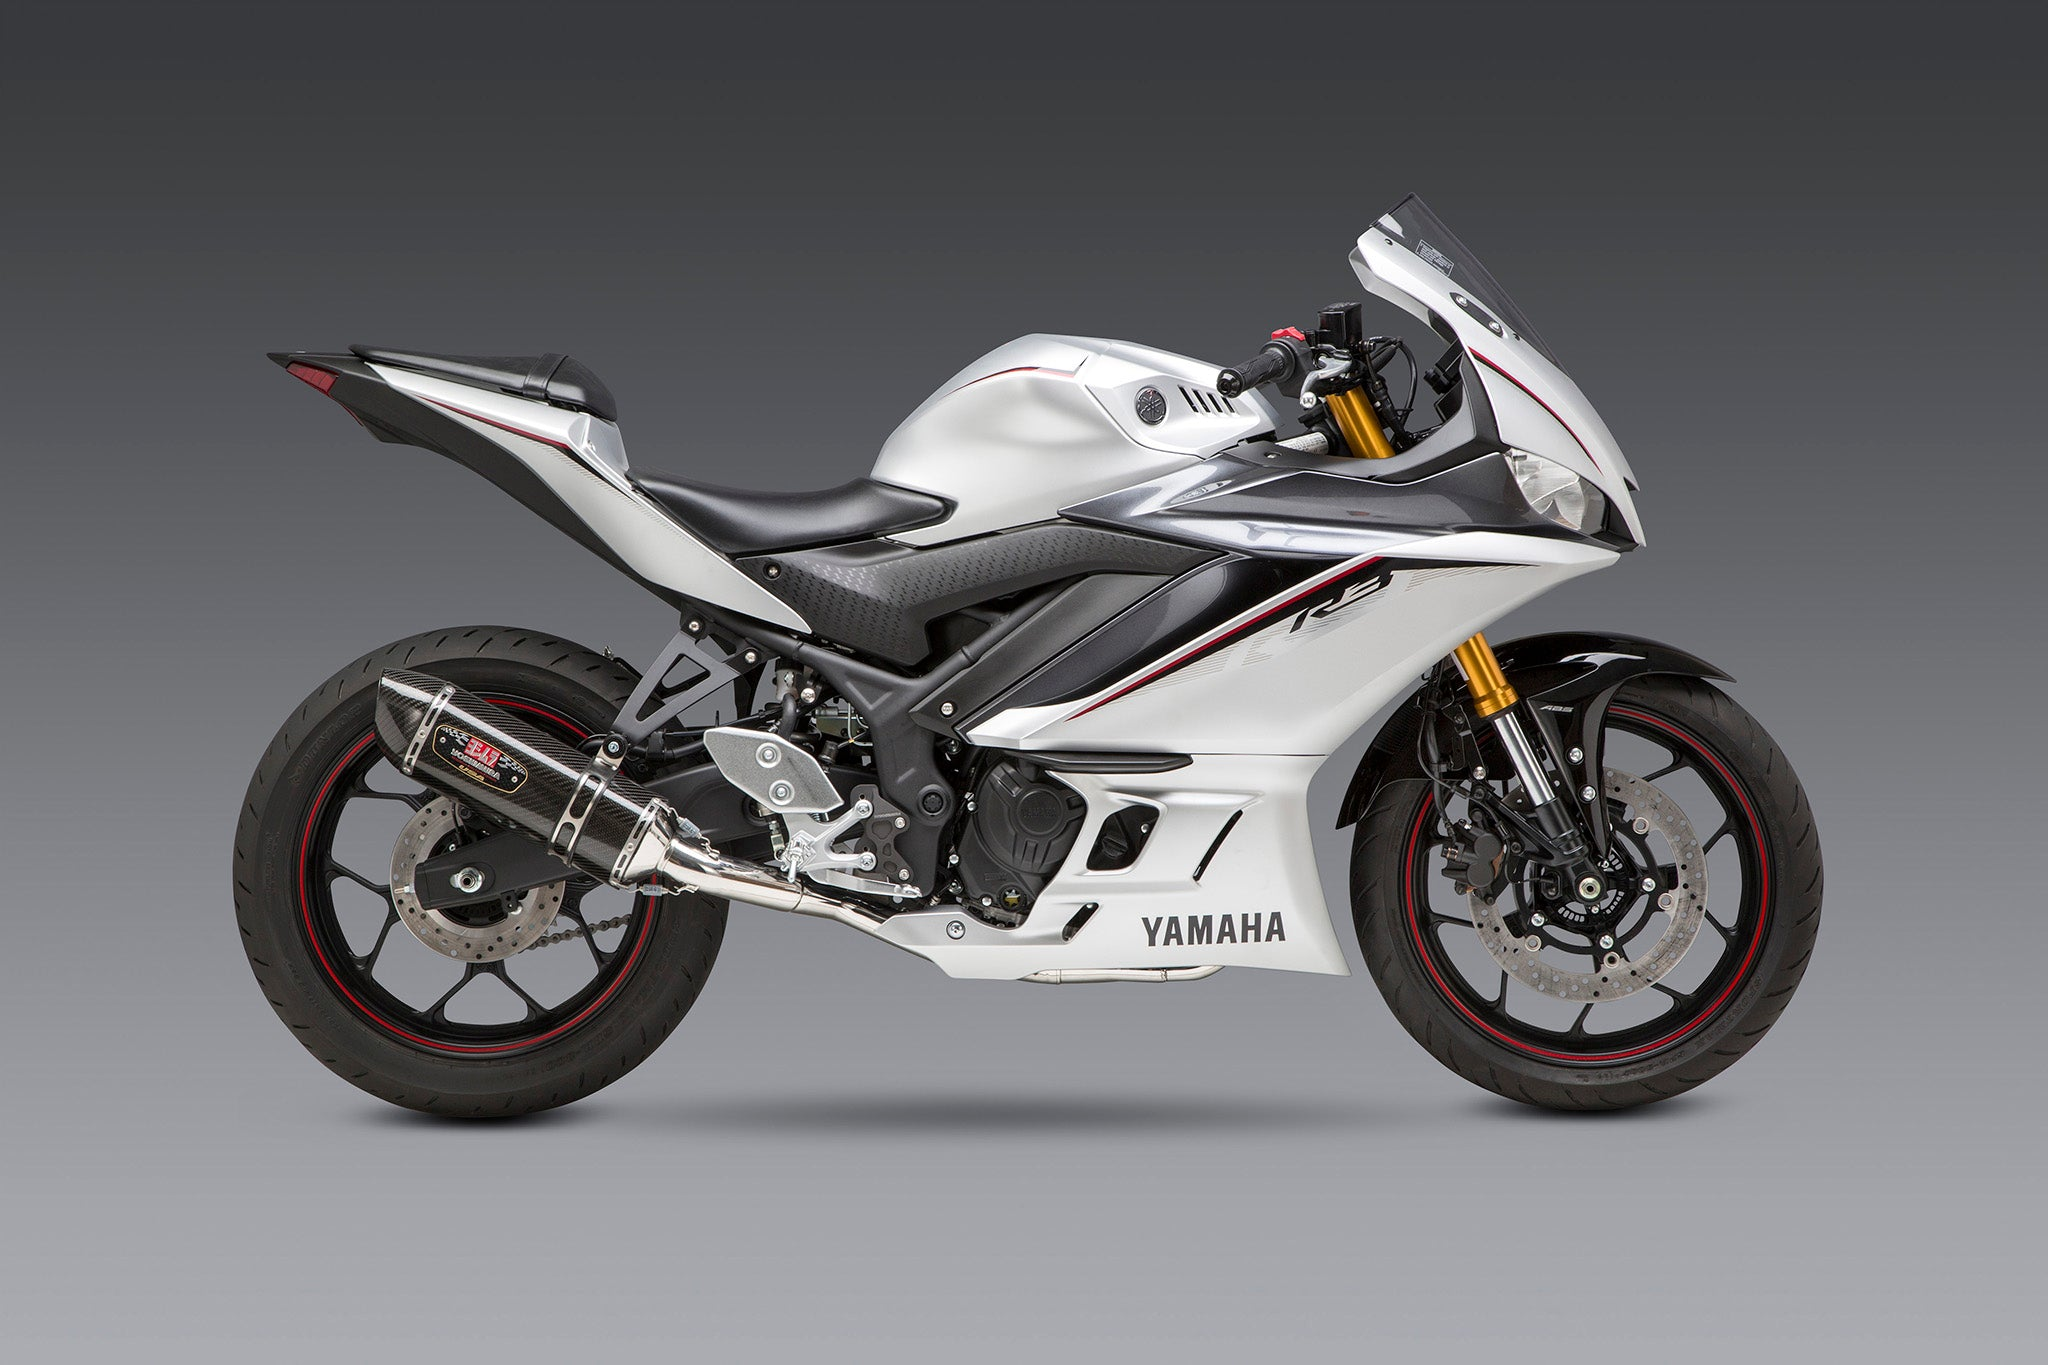 Yoshimura Yzf R3 2015 20 R 77 Stainless Exhaust Carbon